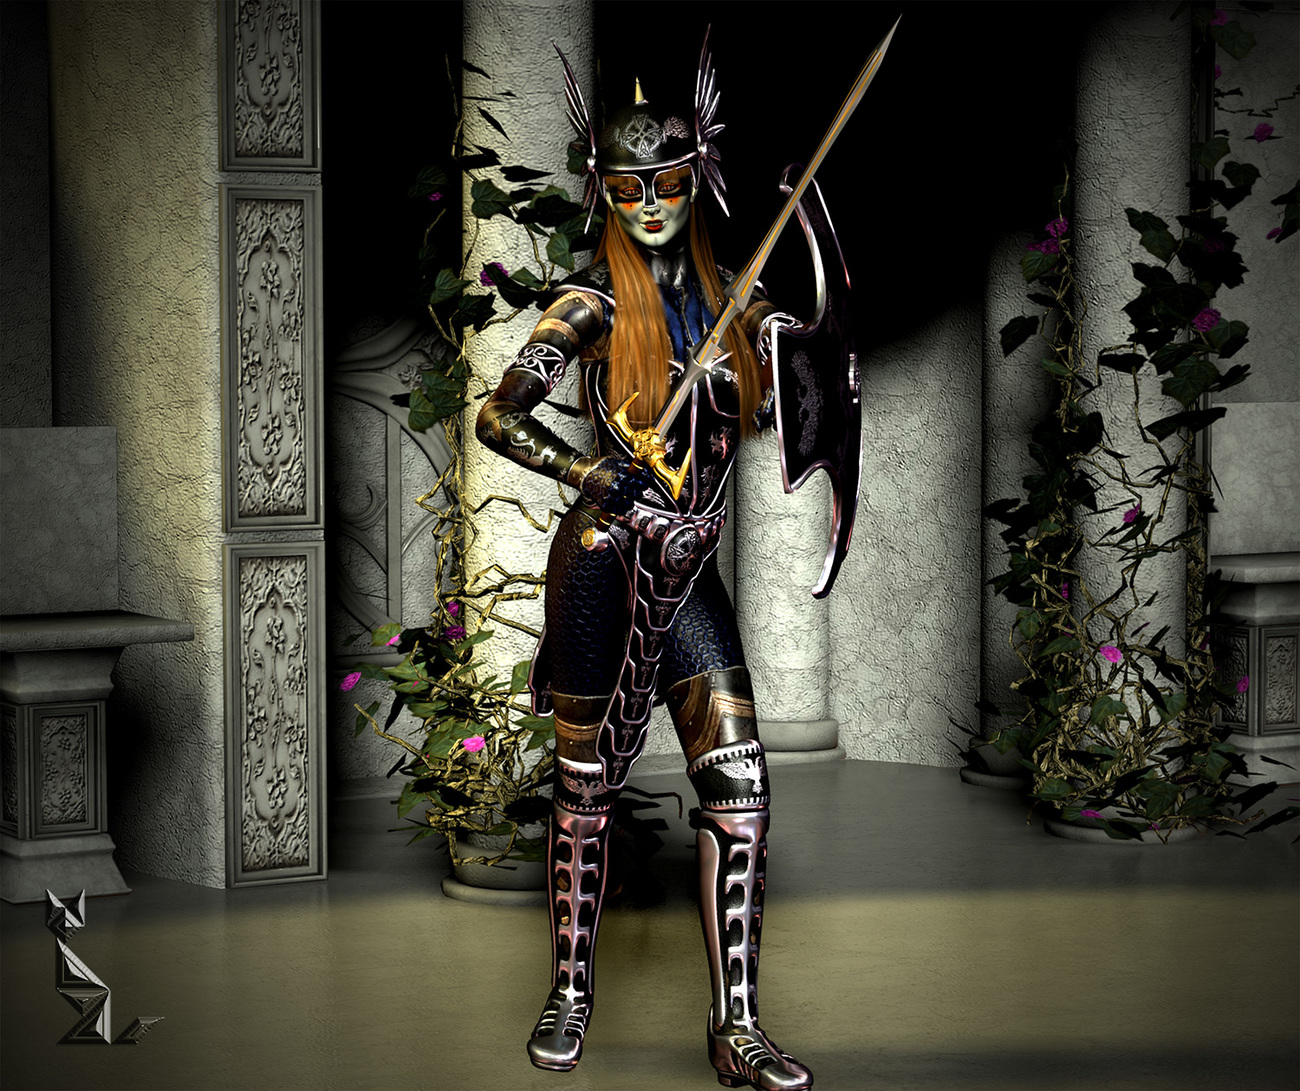 'NVIAW' ... with a sword ... by A_Sunbeam